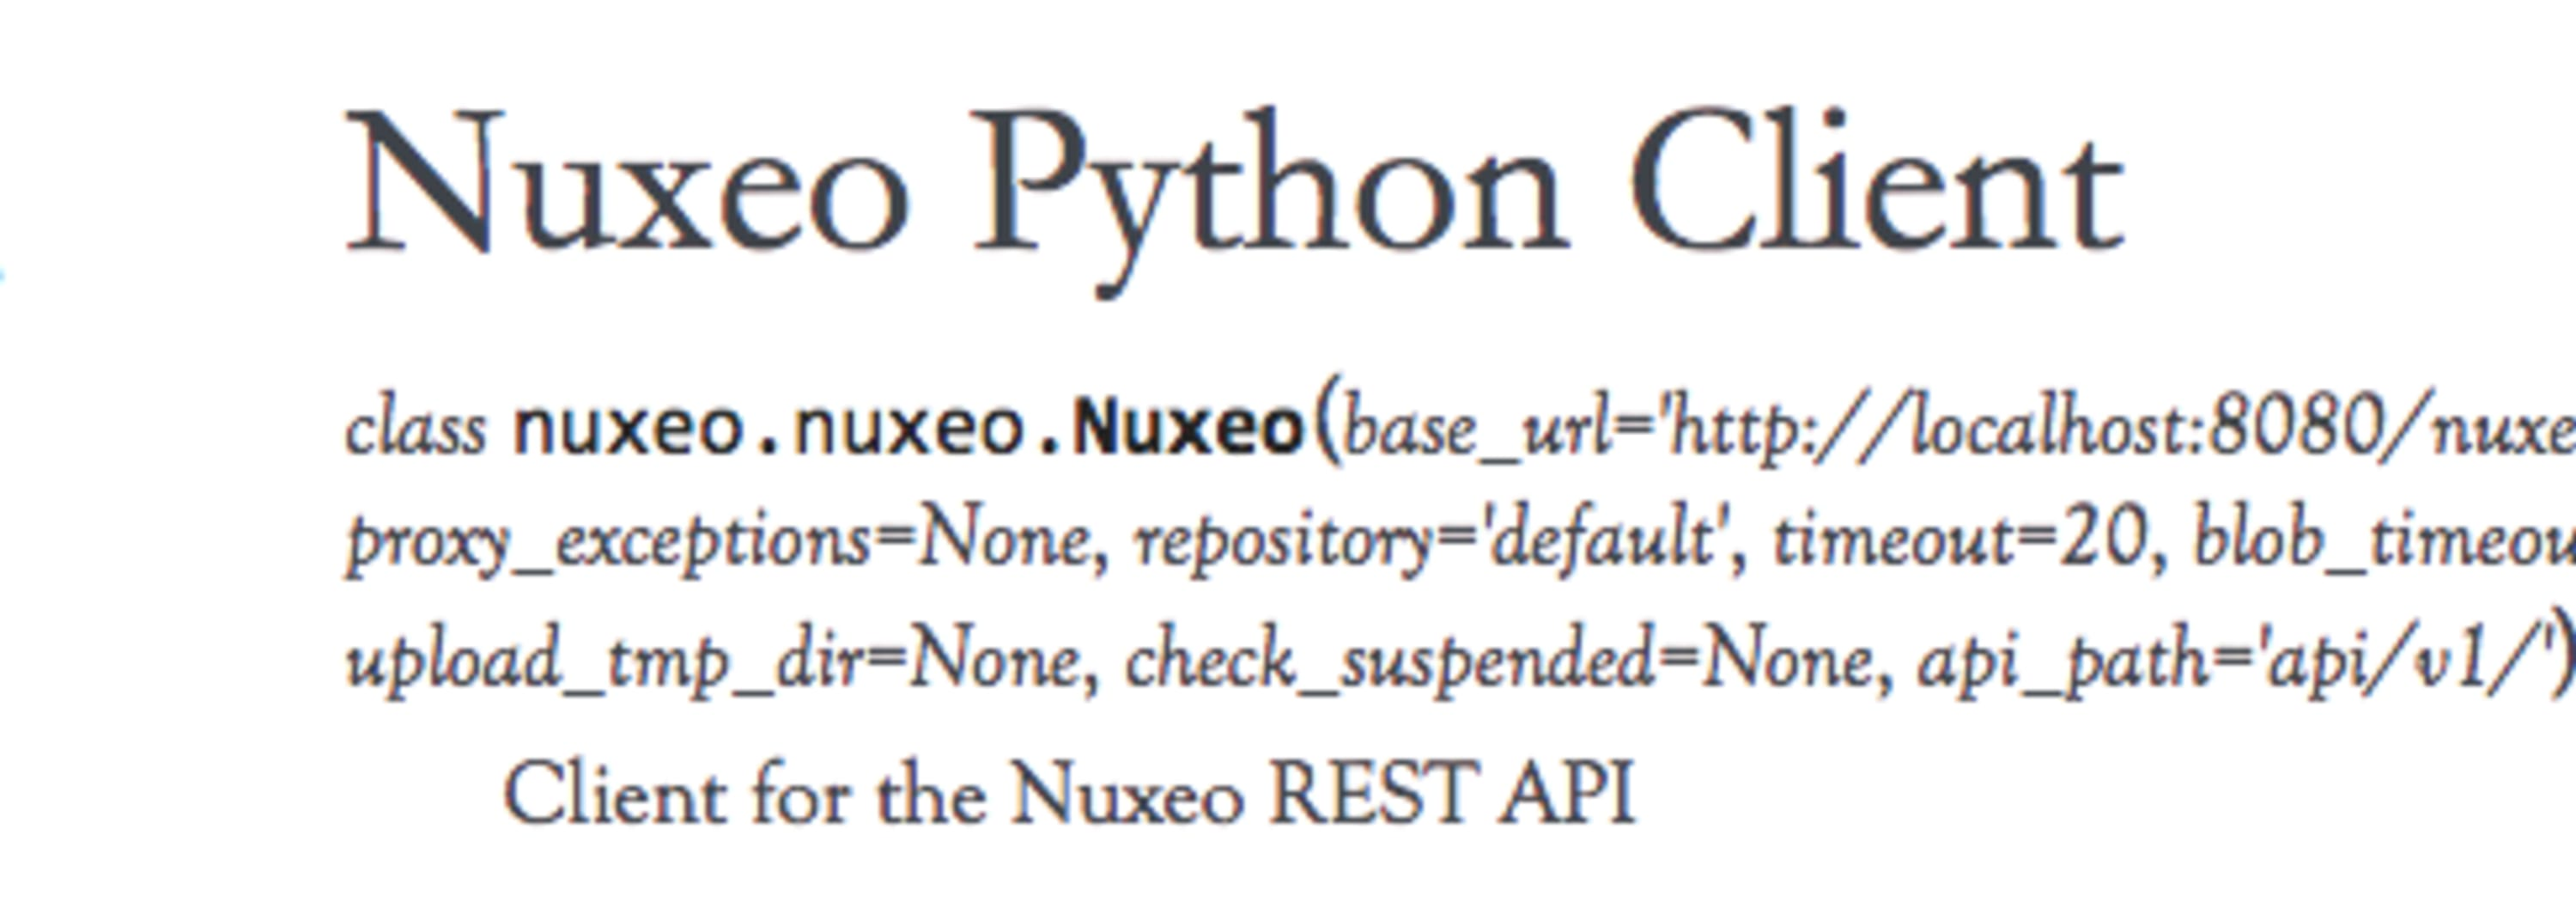 A Python Client Library for Nuxeo Automation and REST API